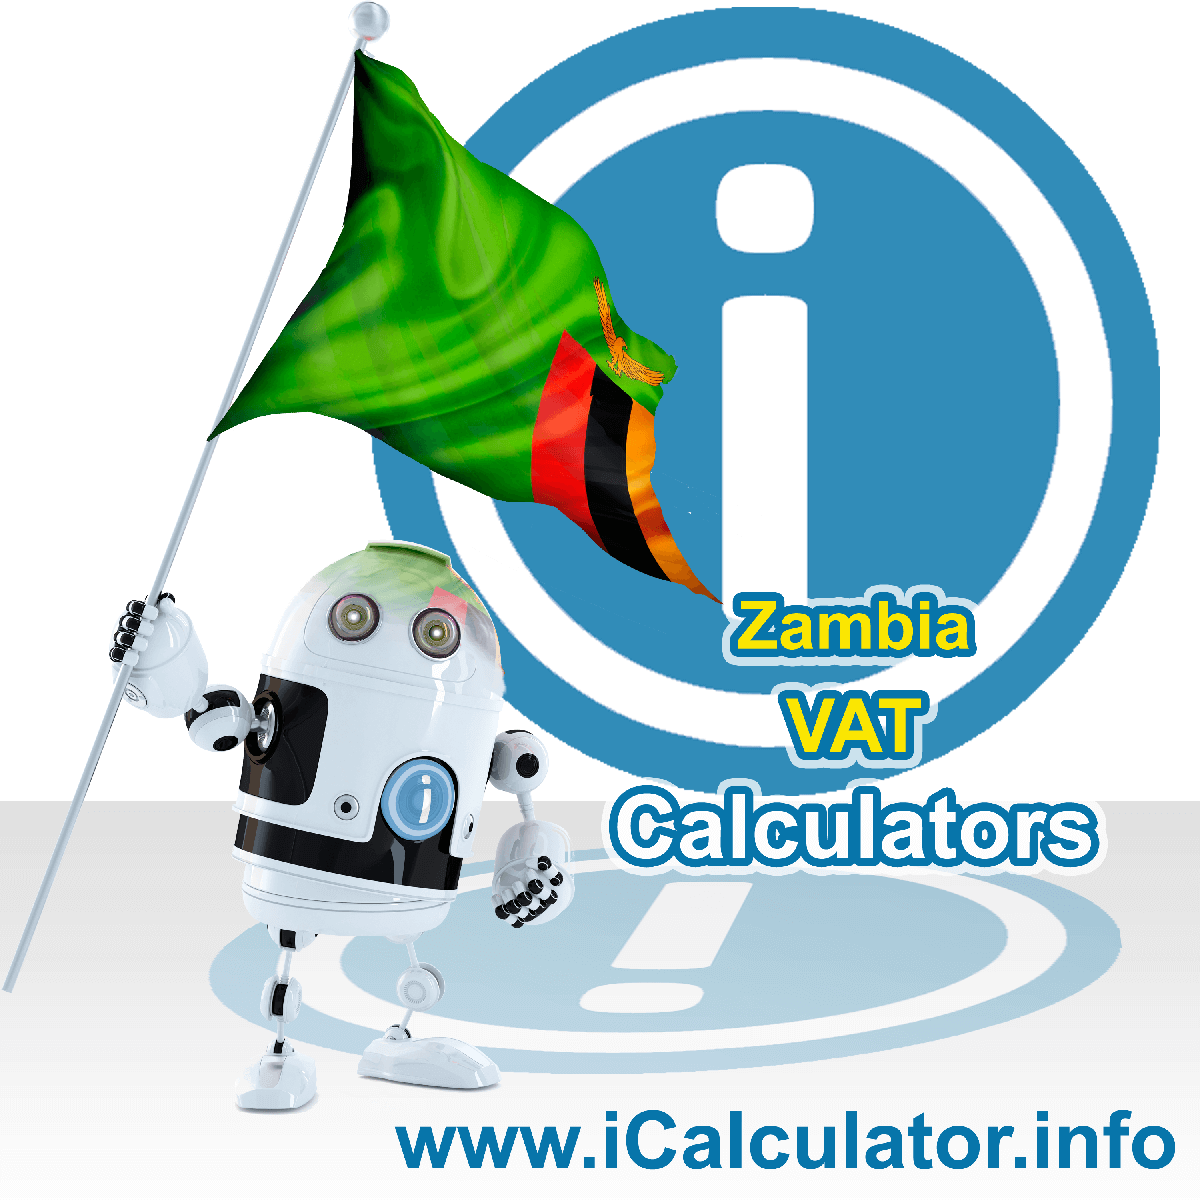 Zambia VAT Calculator. This image shows the Zambia flag and information relating to the VAT formula used for calculating Value Added Tax in Zambia using the Zambia VAT Calculator in 2020